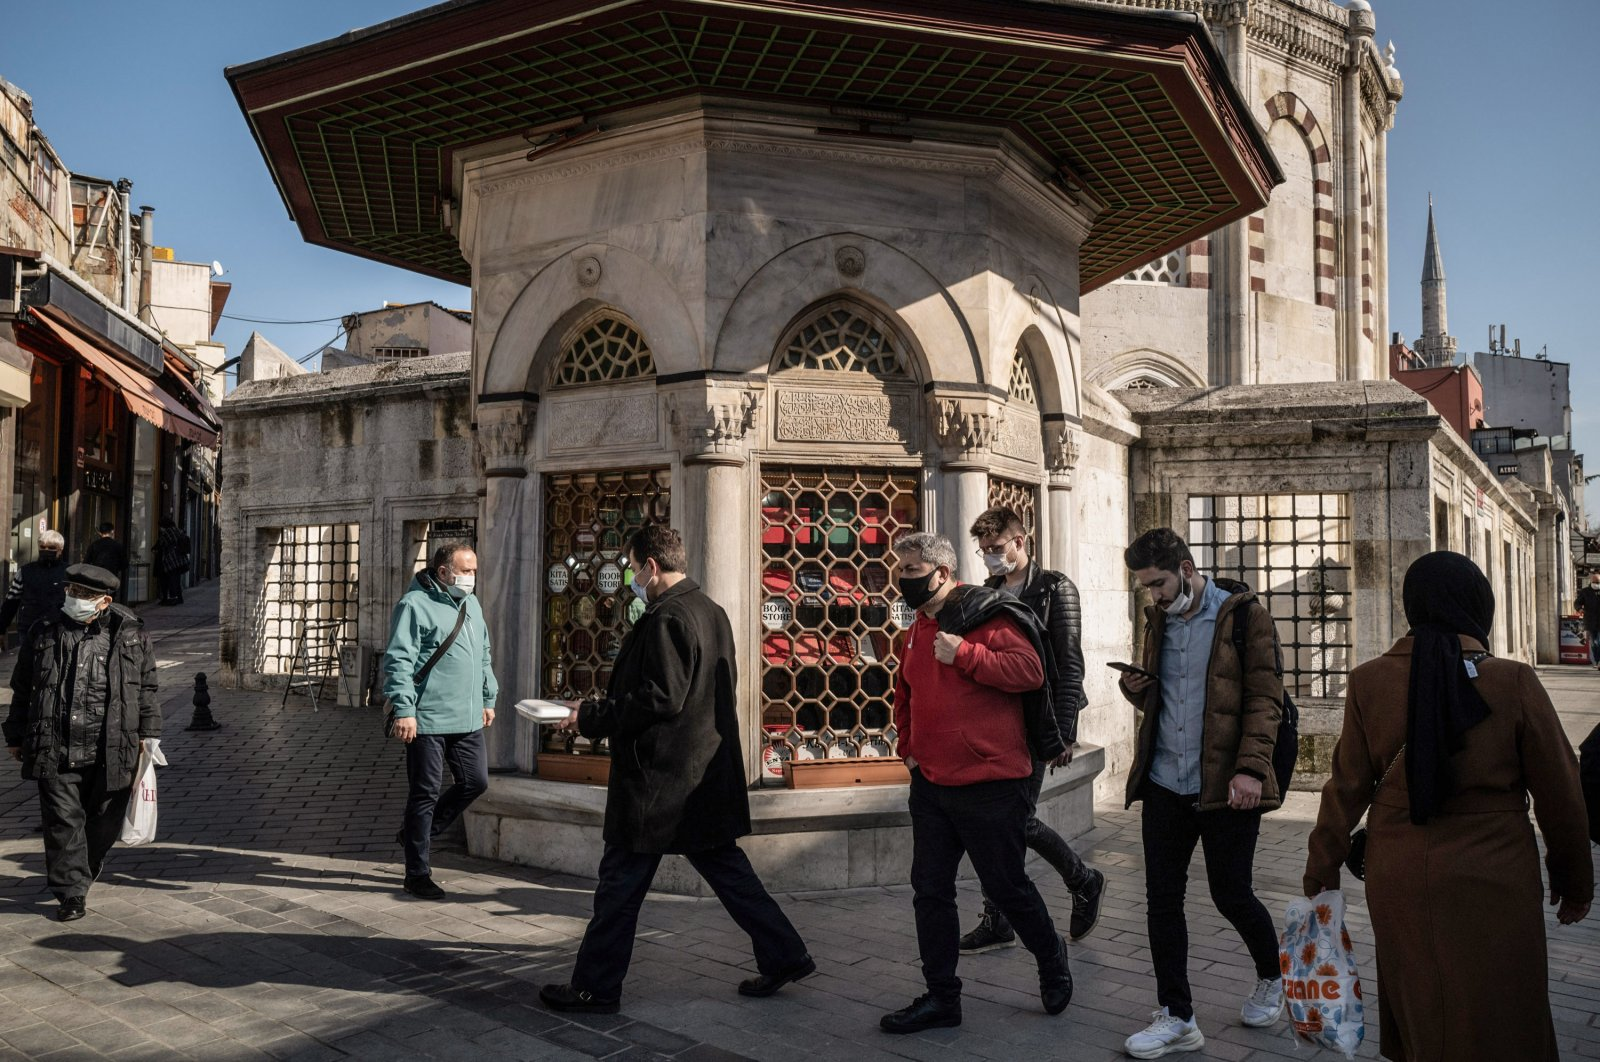 Pedestrians pass a bookstore housed in an annex to the Sinan Pasha Madrassa, Istanbul, Turkey, Feb. 2, 2021. (Photo by Getty Images)